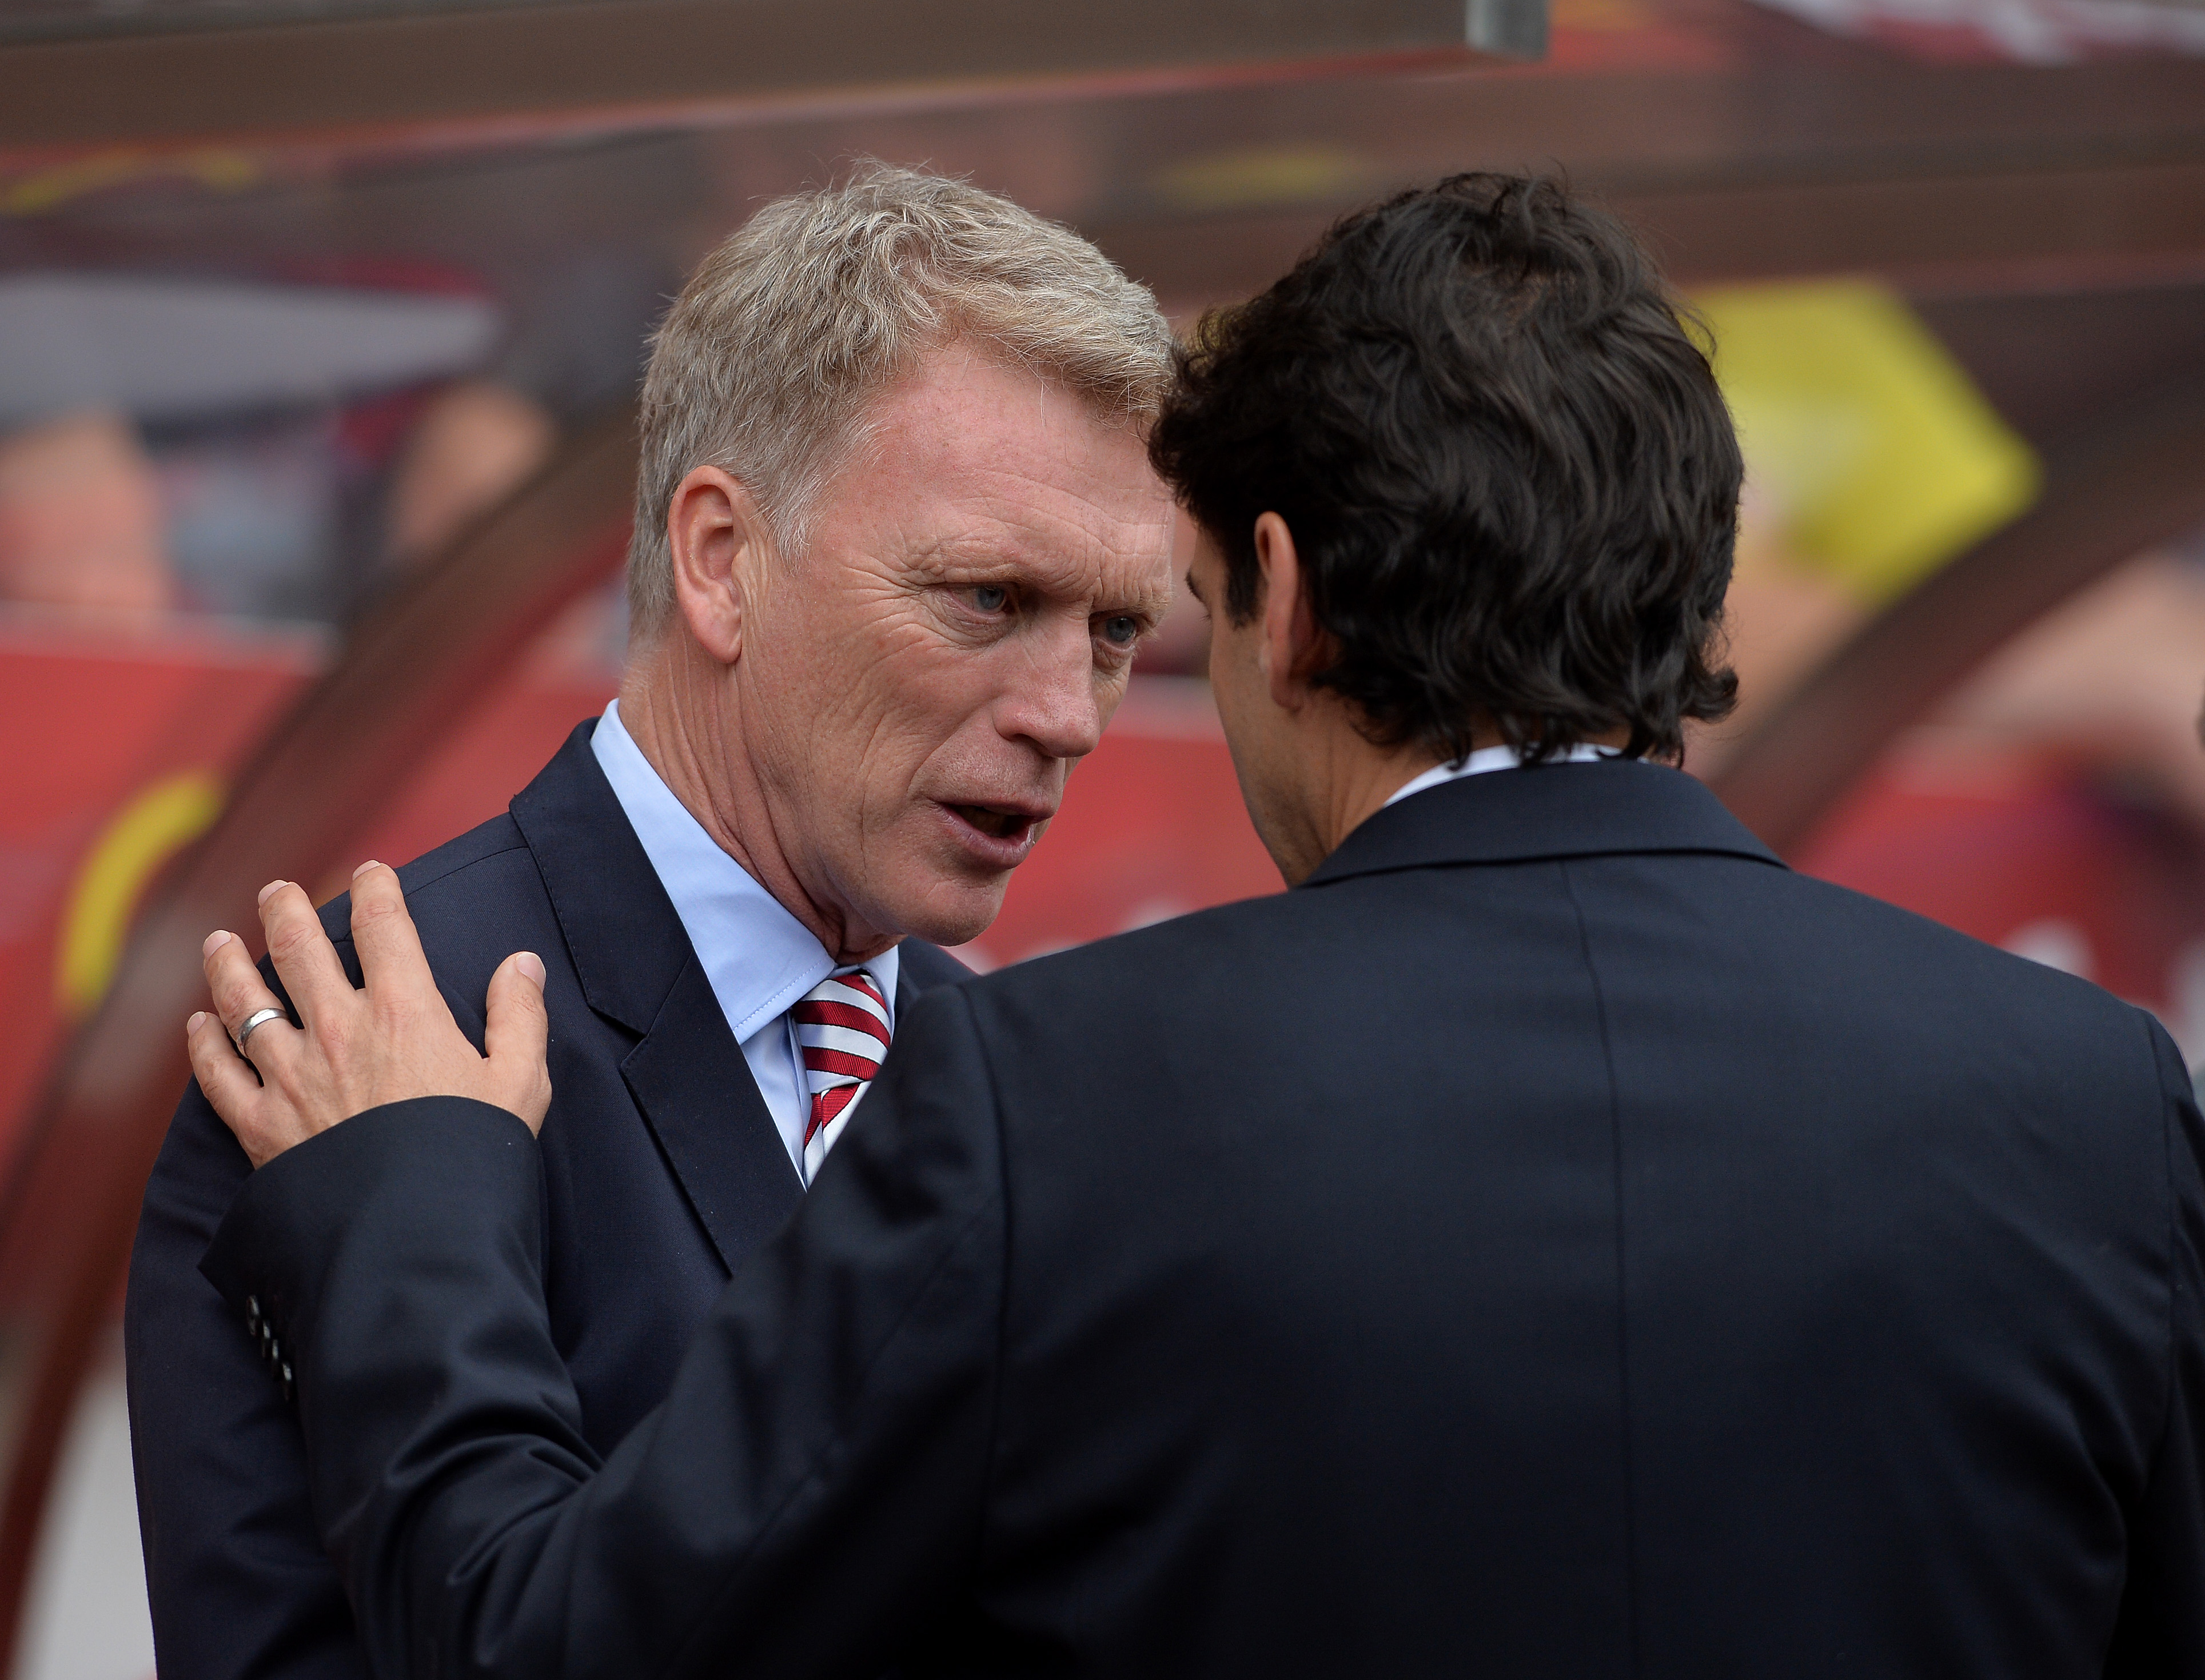 Sunderland manager David Moyes' future to be decided at end of season